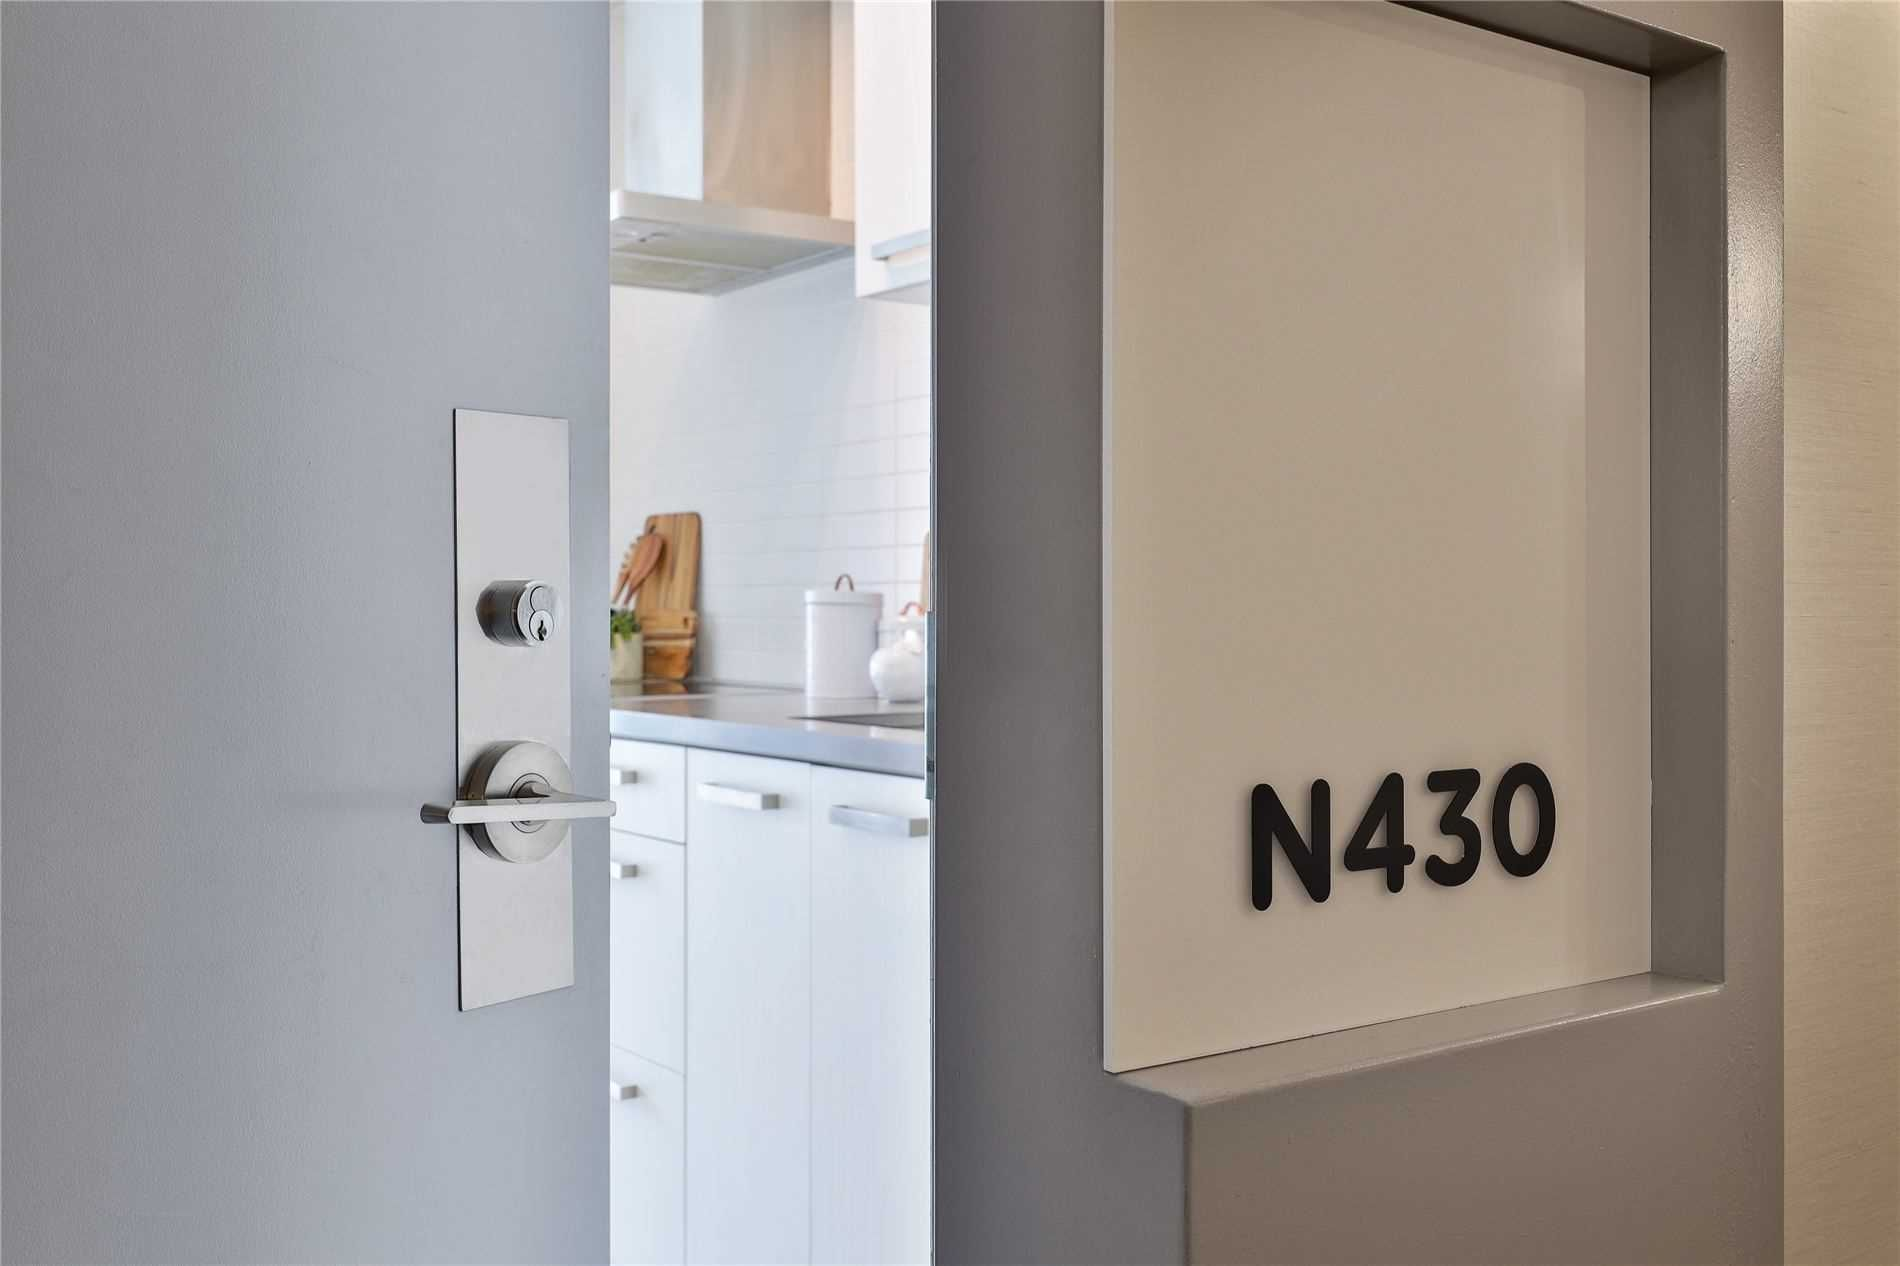 455 Front St E, unit N-430 for sale in Toronto - image #2